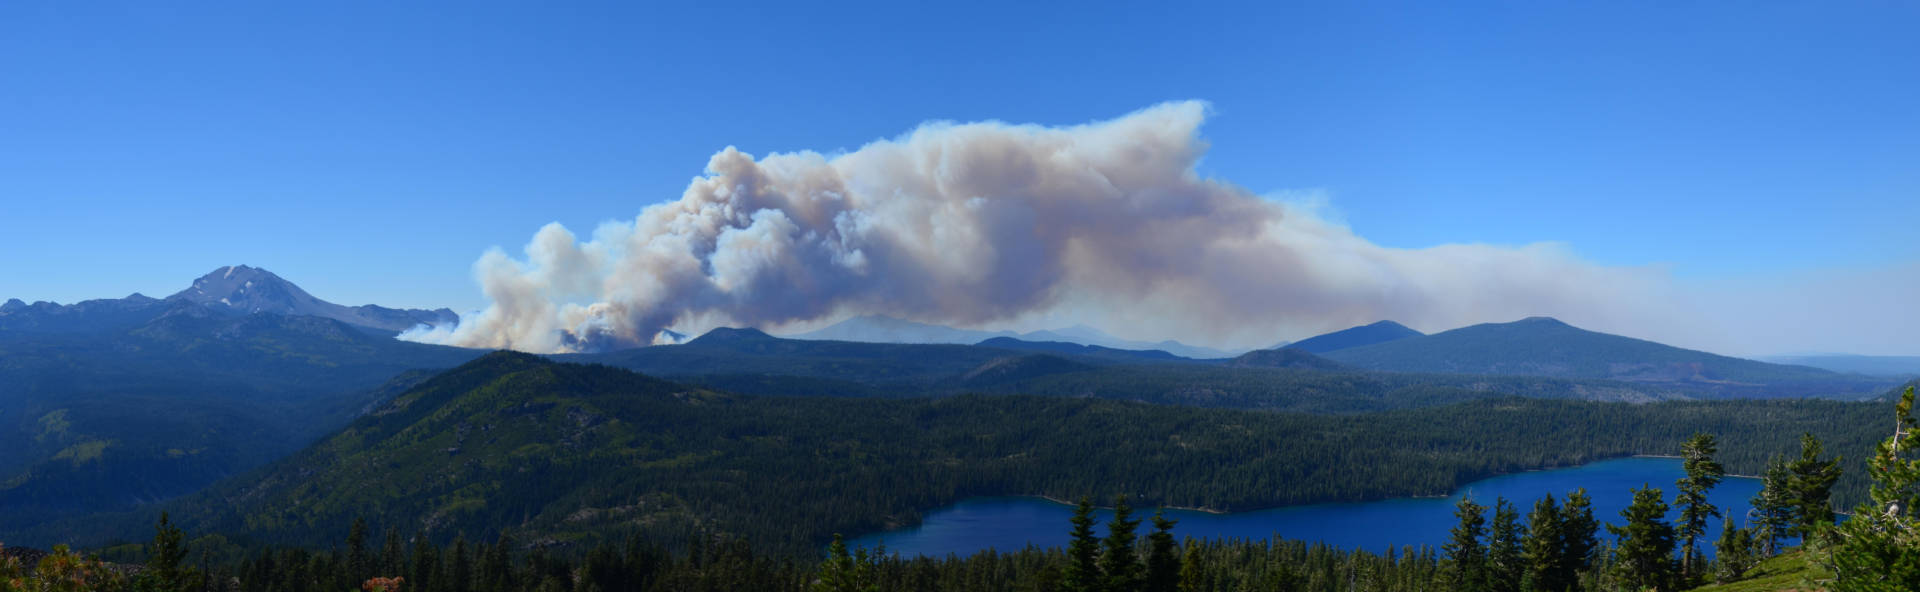 Forest managers lost control of the 2012 Reading Fire in Lassen County. Lassen National Park Service